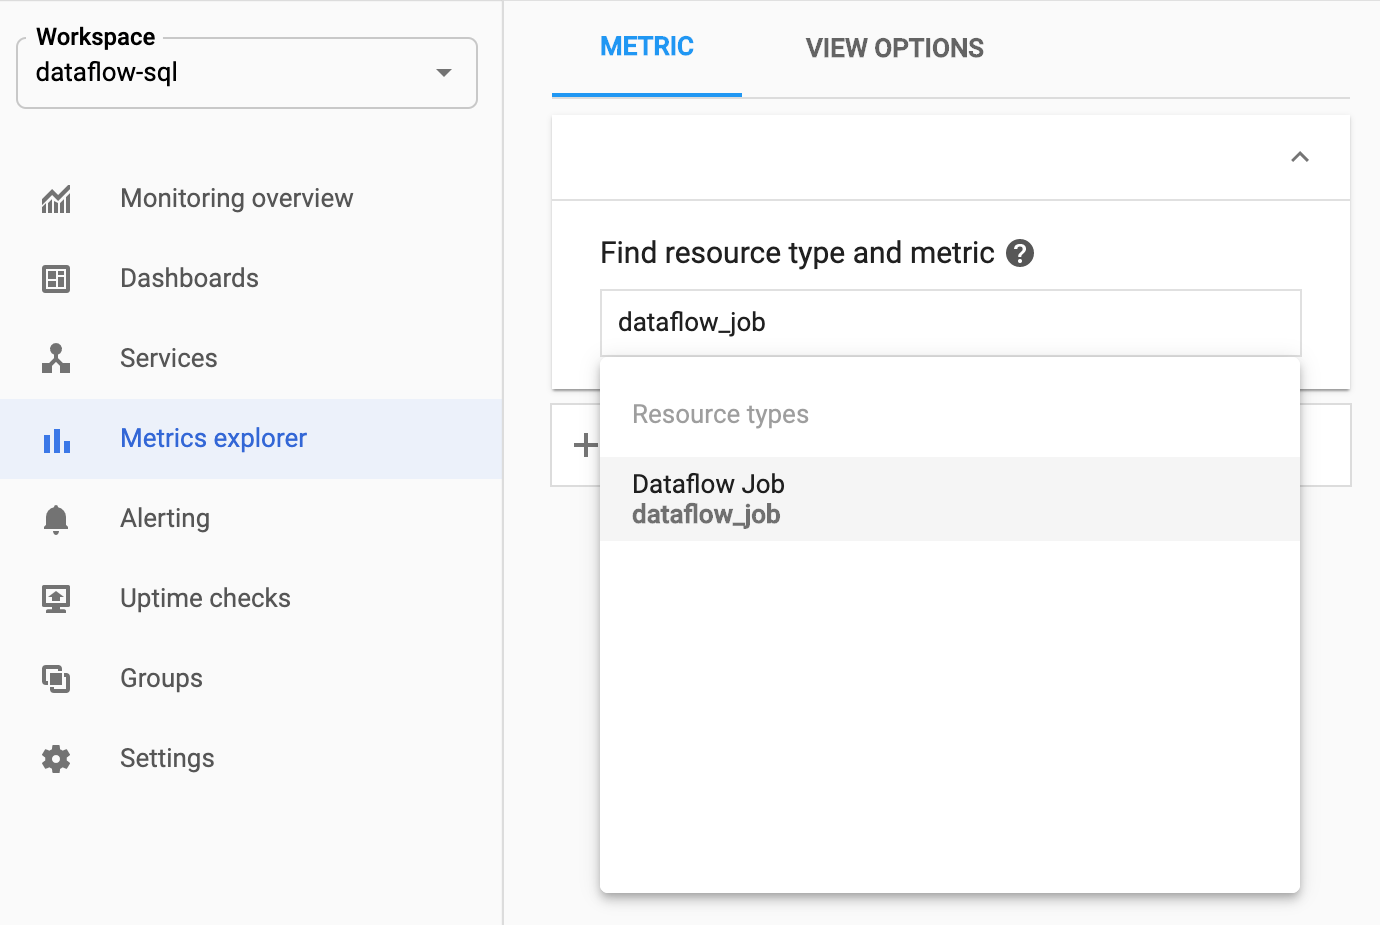 Selecting dataflow_job resource in the Metrics explorer.